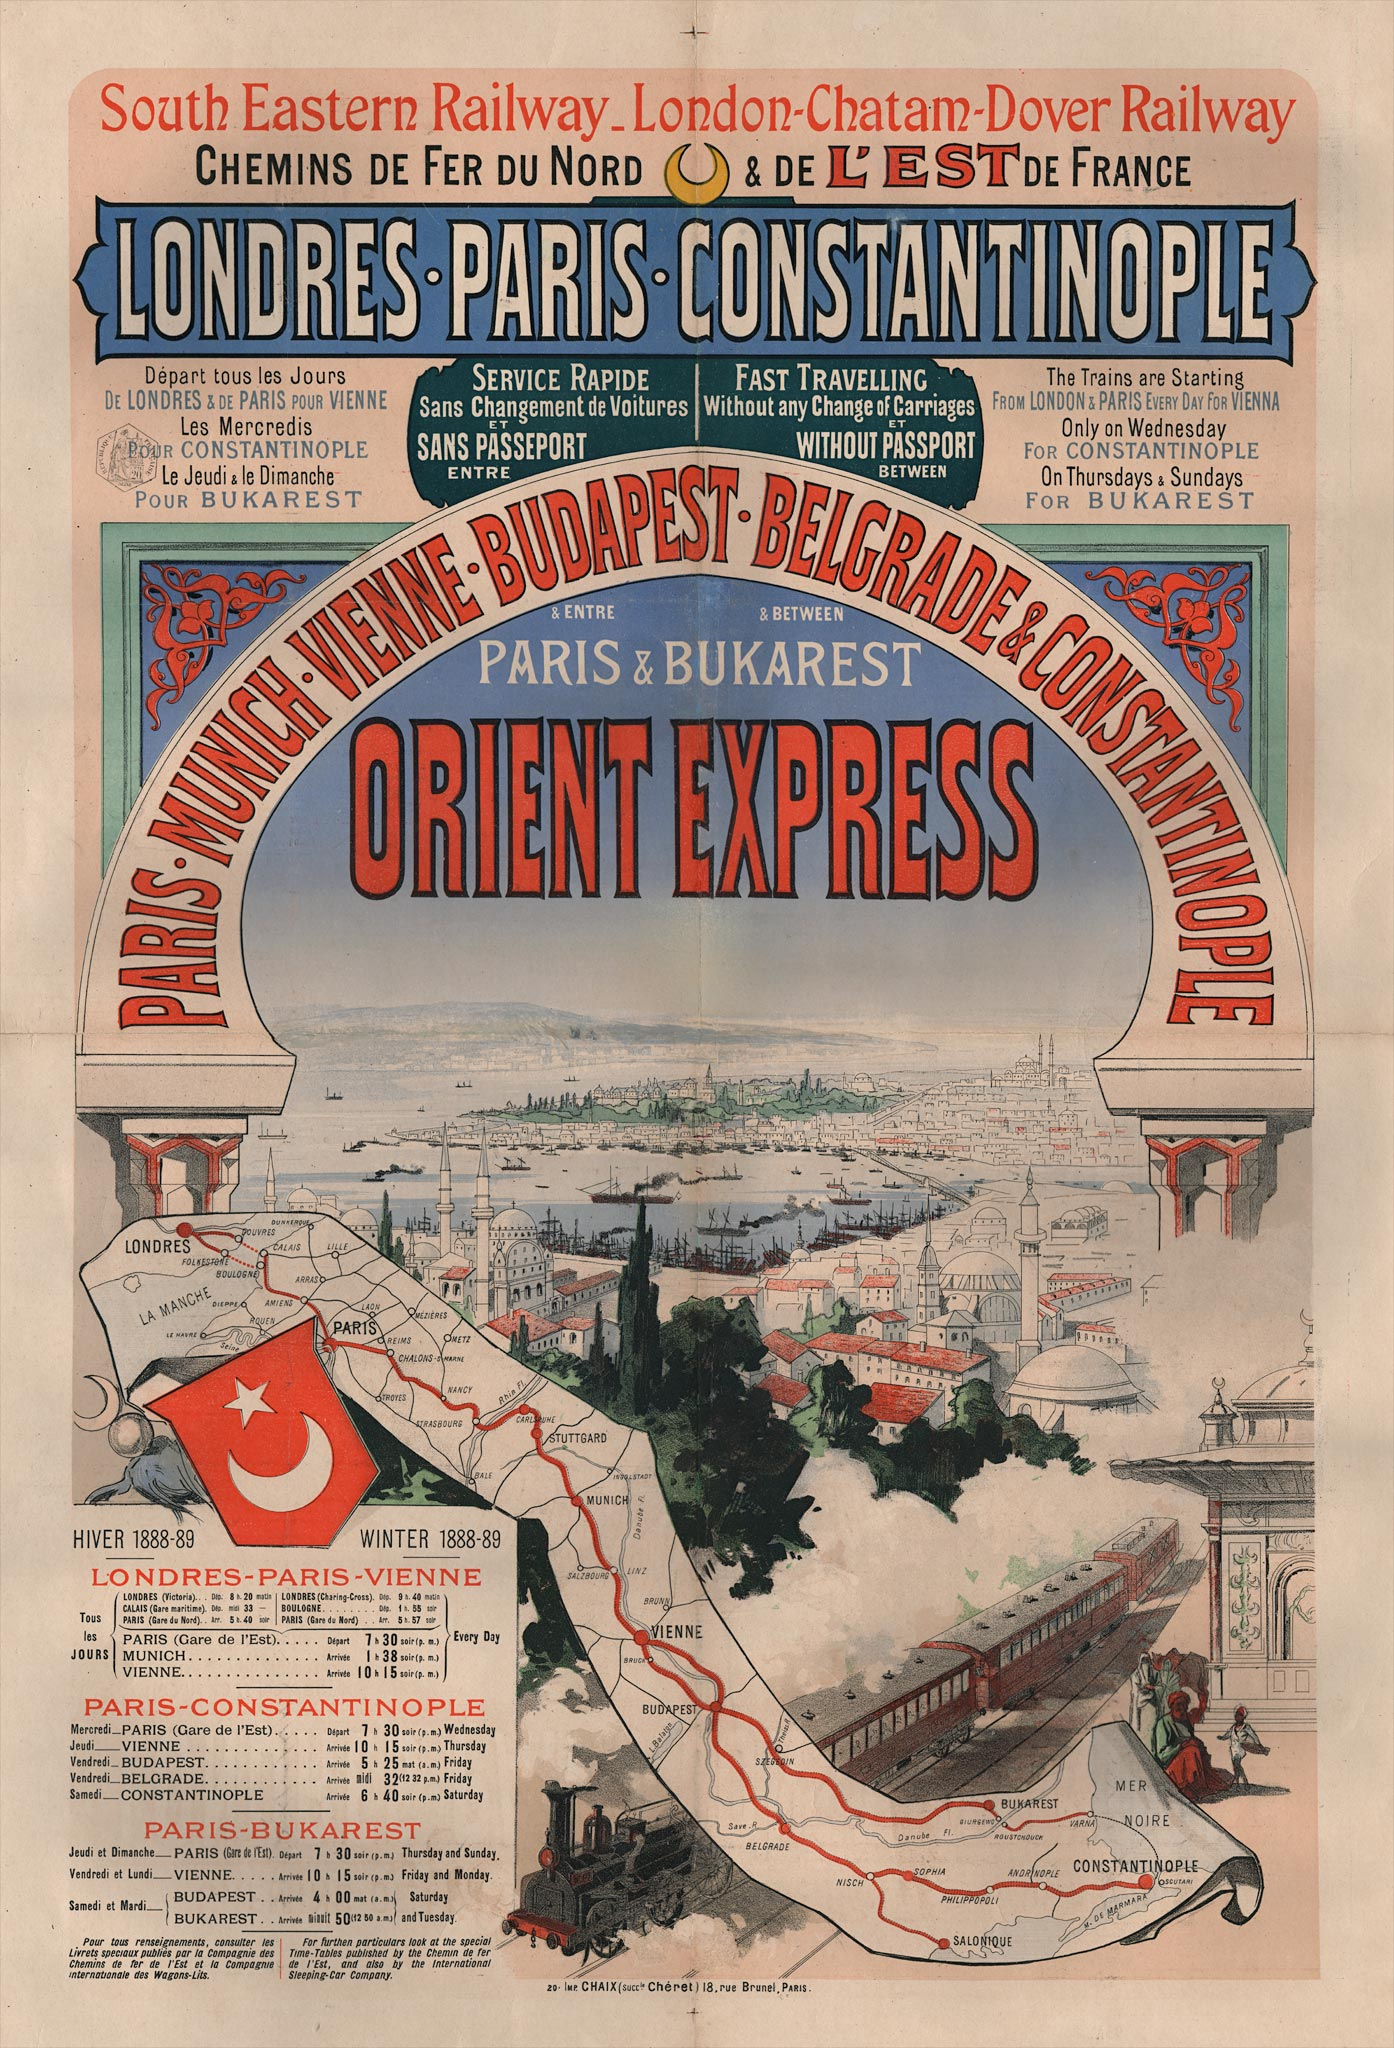 https://i1.wp.com/upload.wikimedia.org/wikipedia/commons/a/a7/Aff_ciwl_orient_express4_jw.jpg